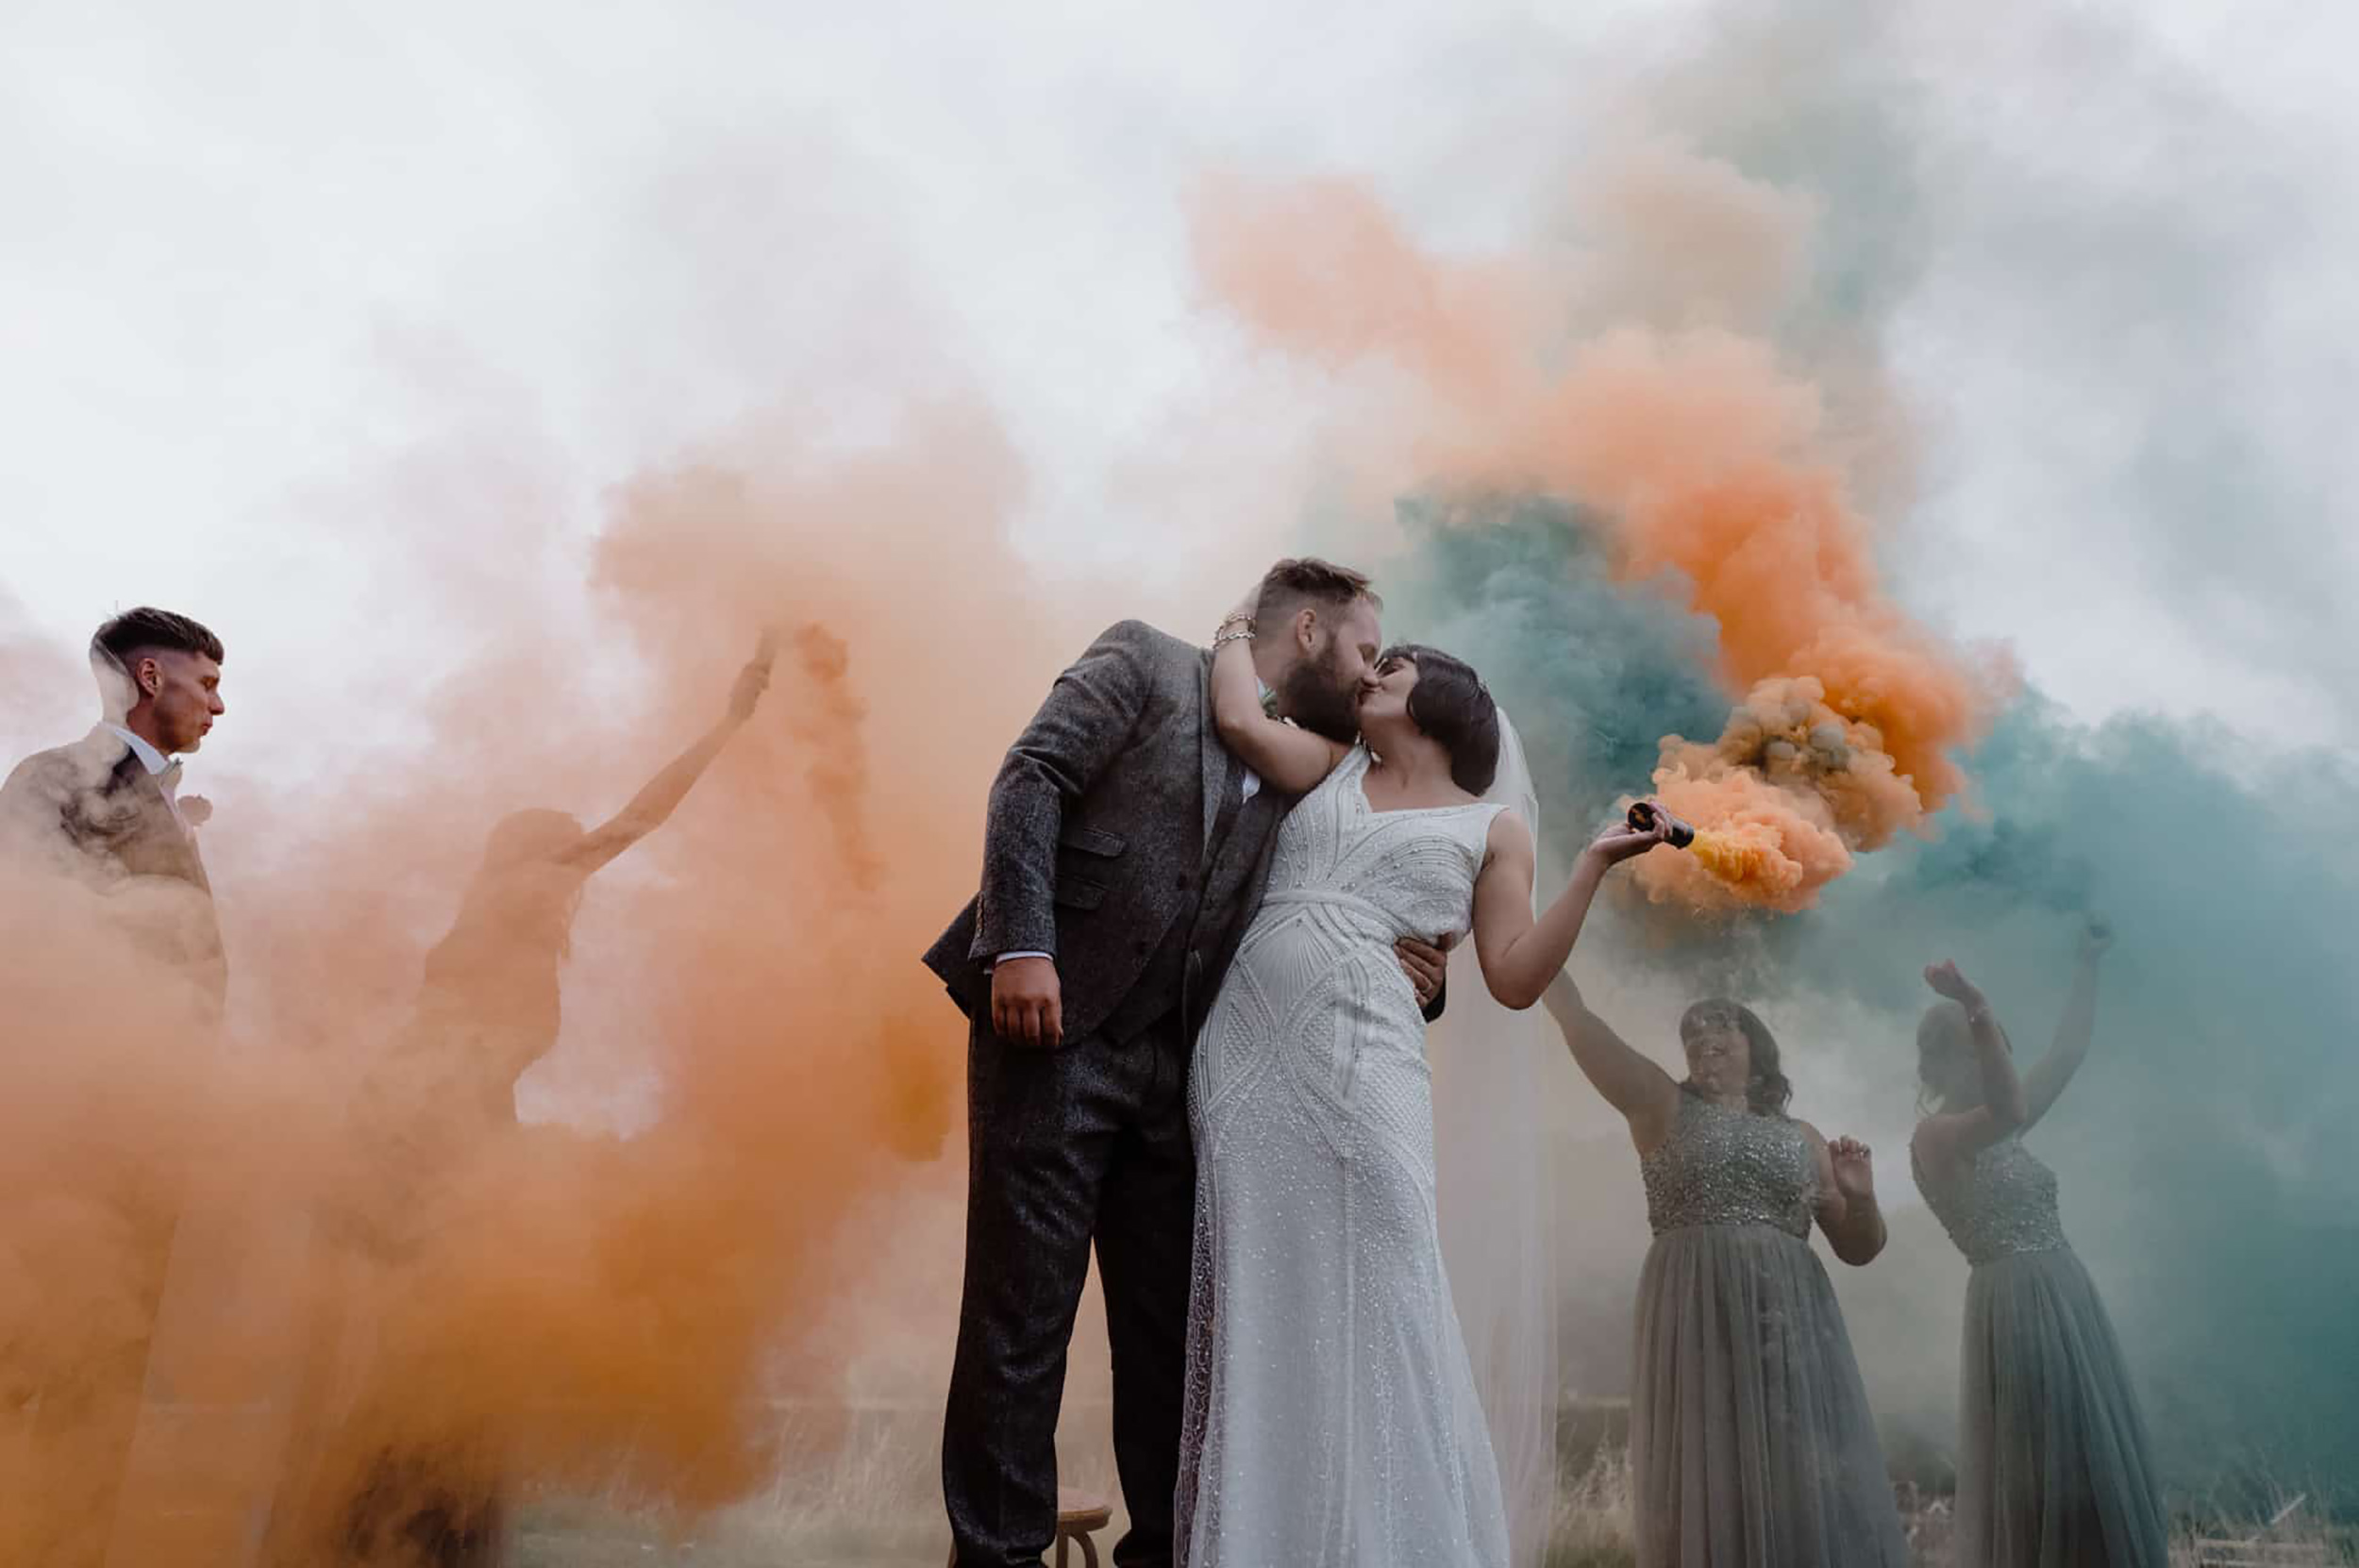 art deco inspired wedding photography by Damian Brandon at Tower Hill Barns with pastel coloured smoke bombs